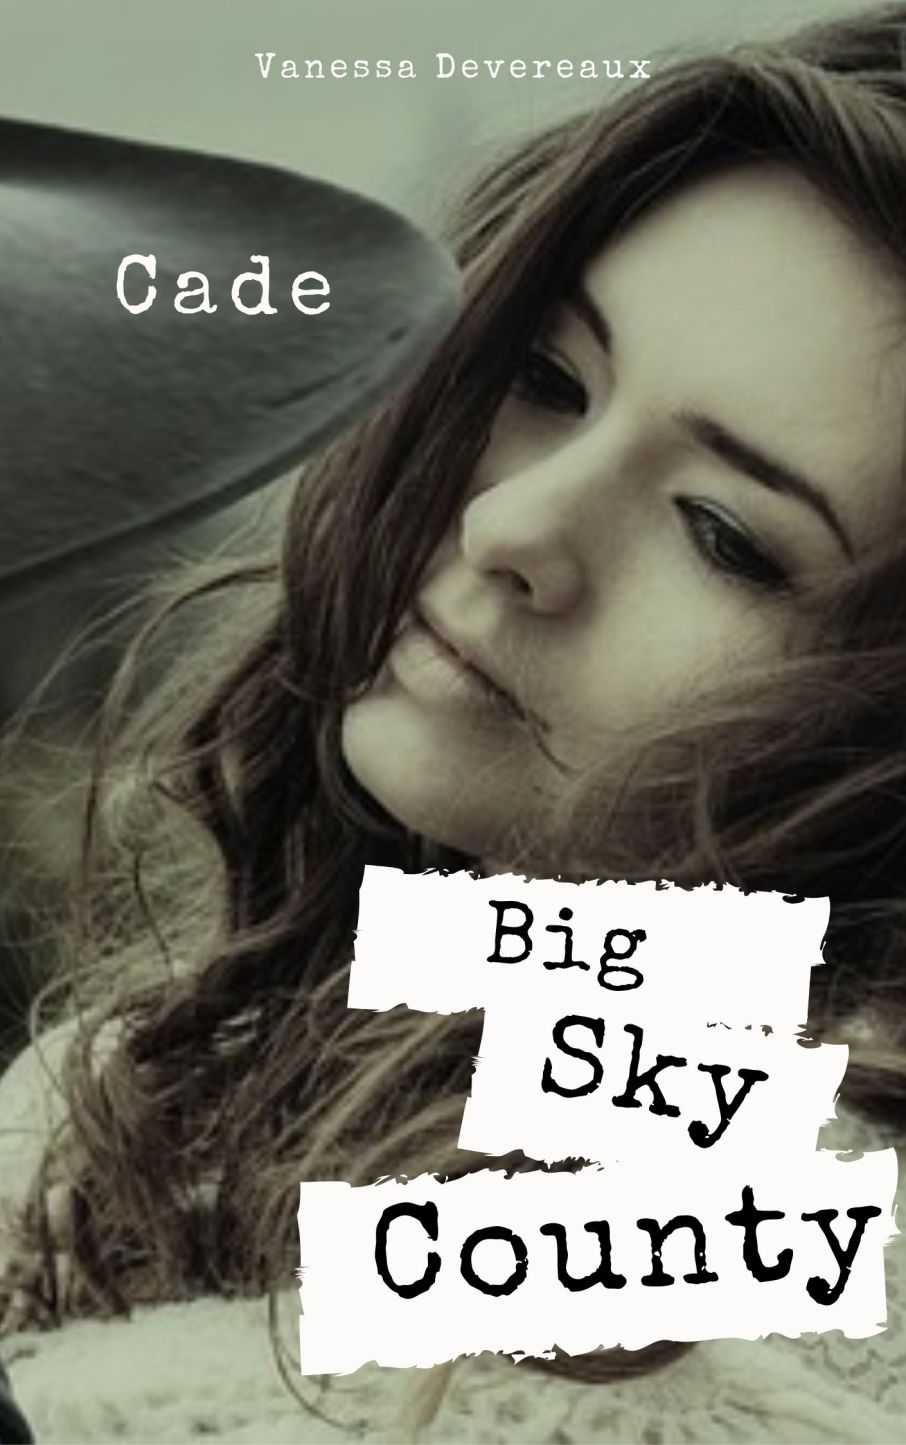 Cade Big Sky County